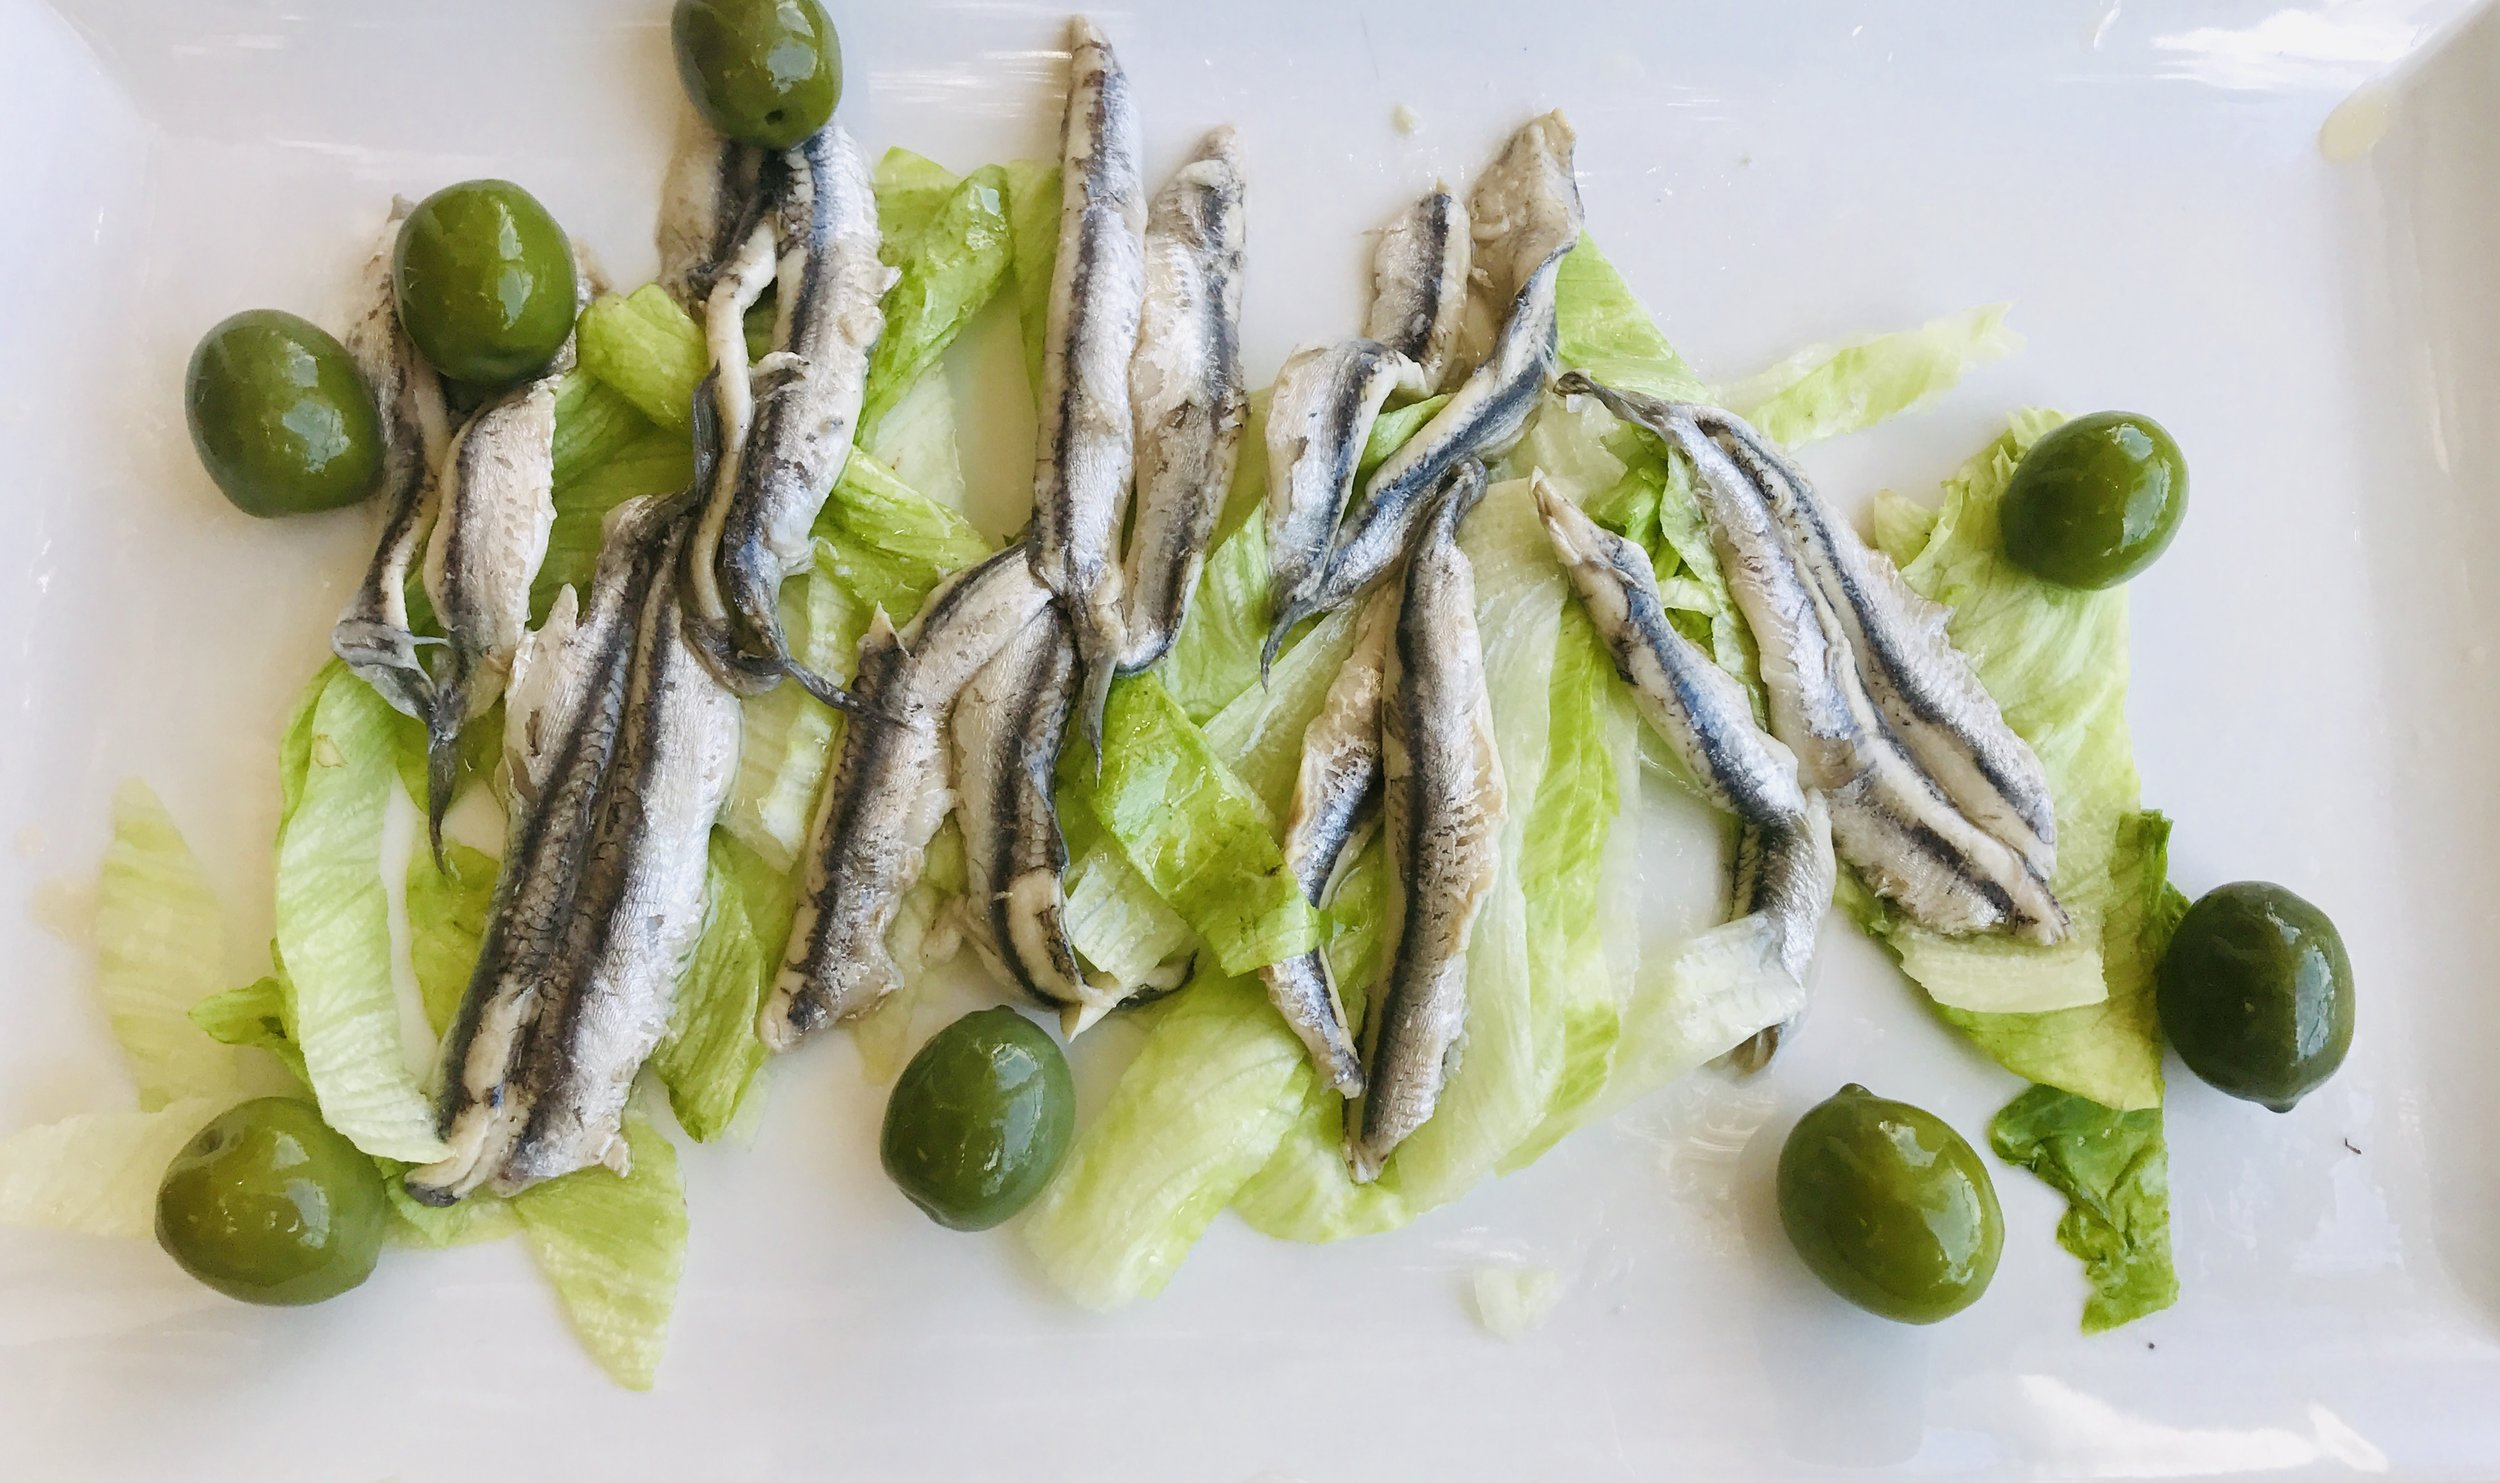 White anchovies for lunch